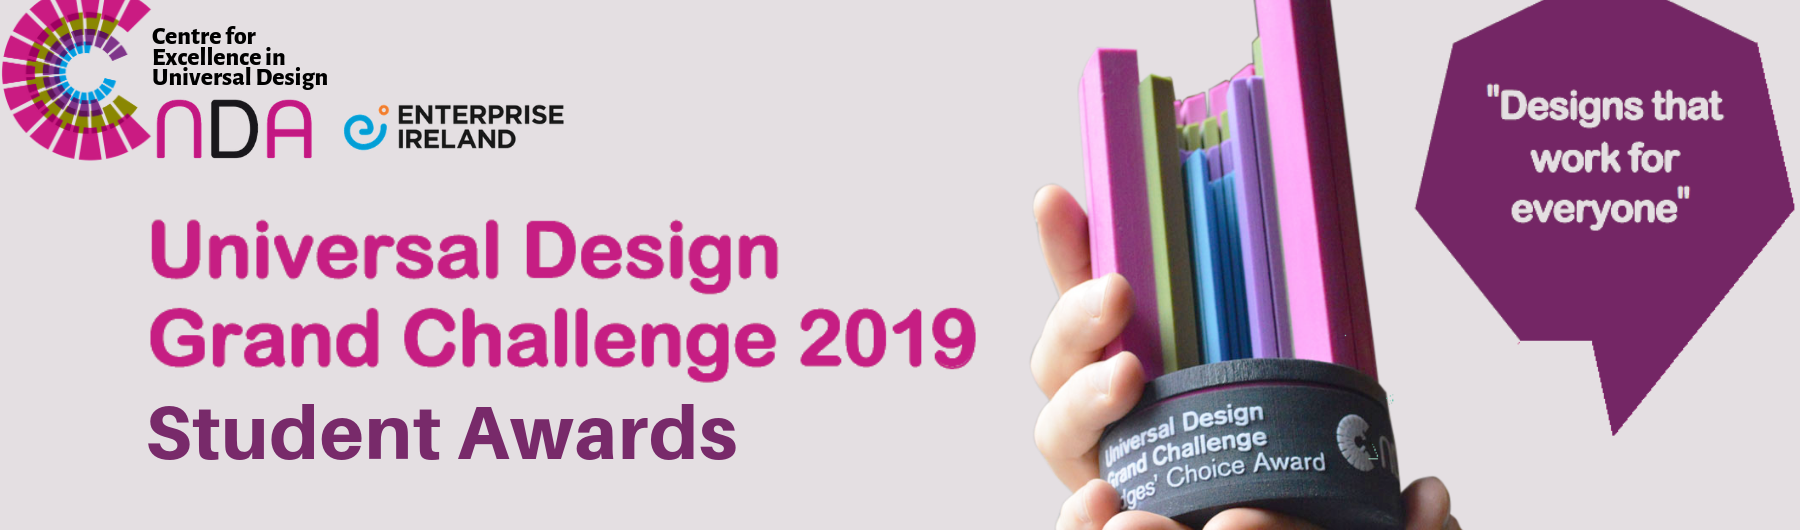 Universal Design Grand Challenge Awards Night 2019